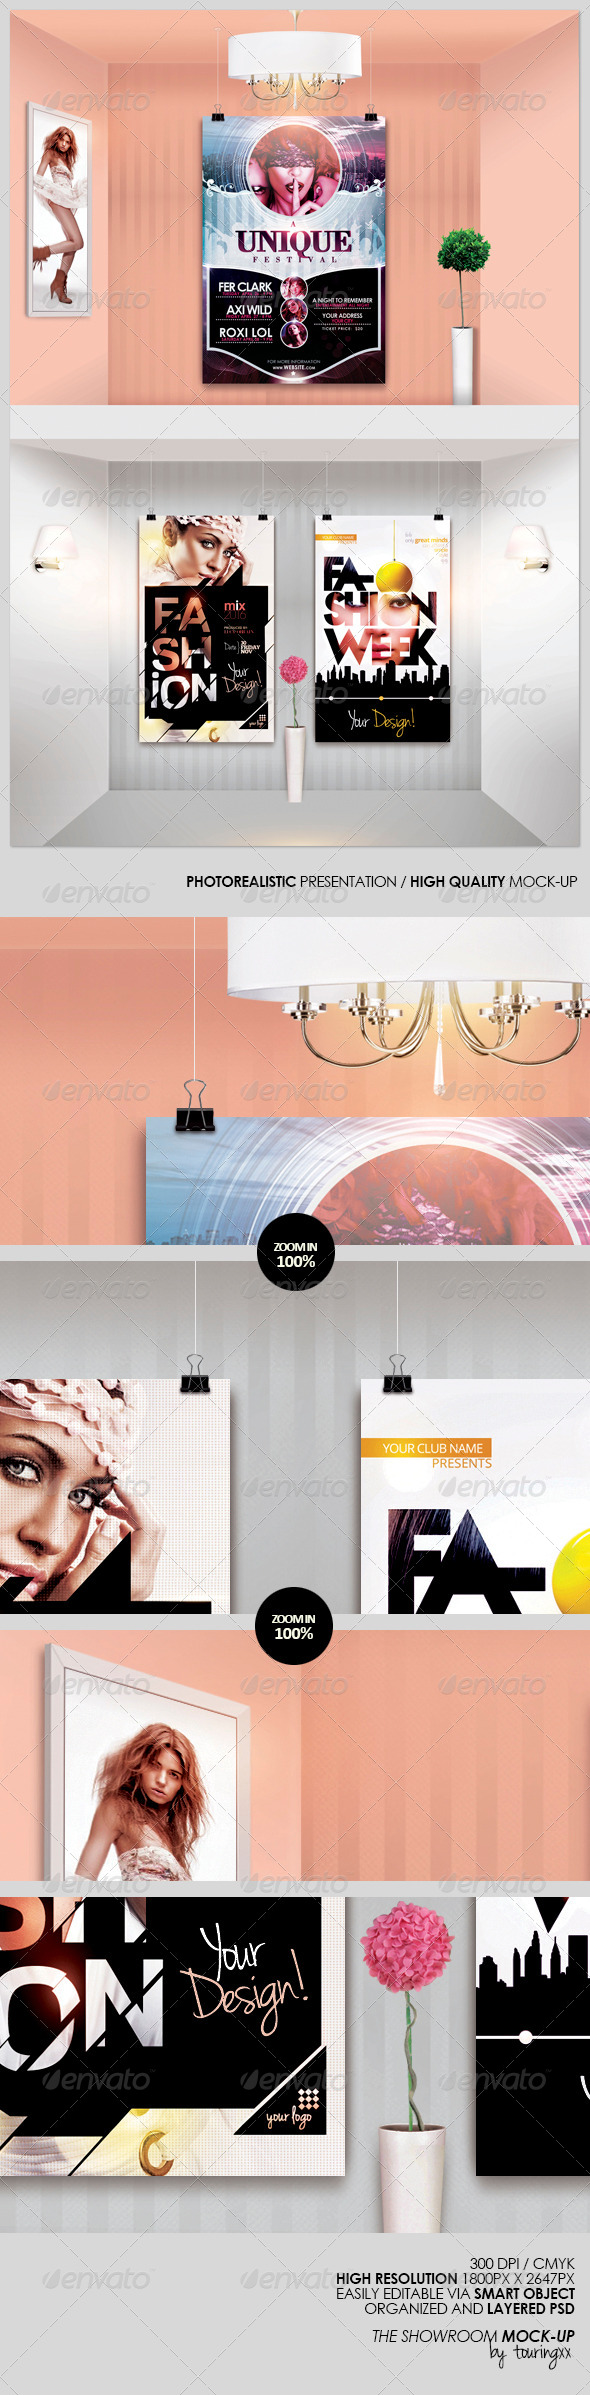 GraphicRiver The Showroom Mock-Up 5109140